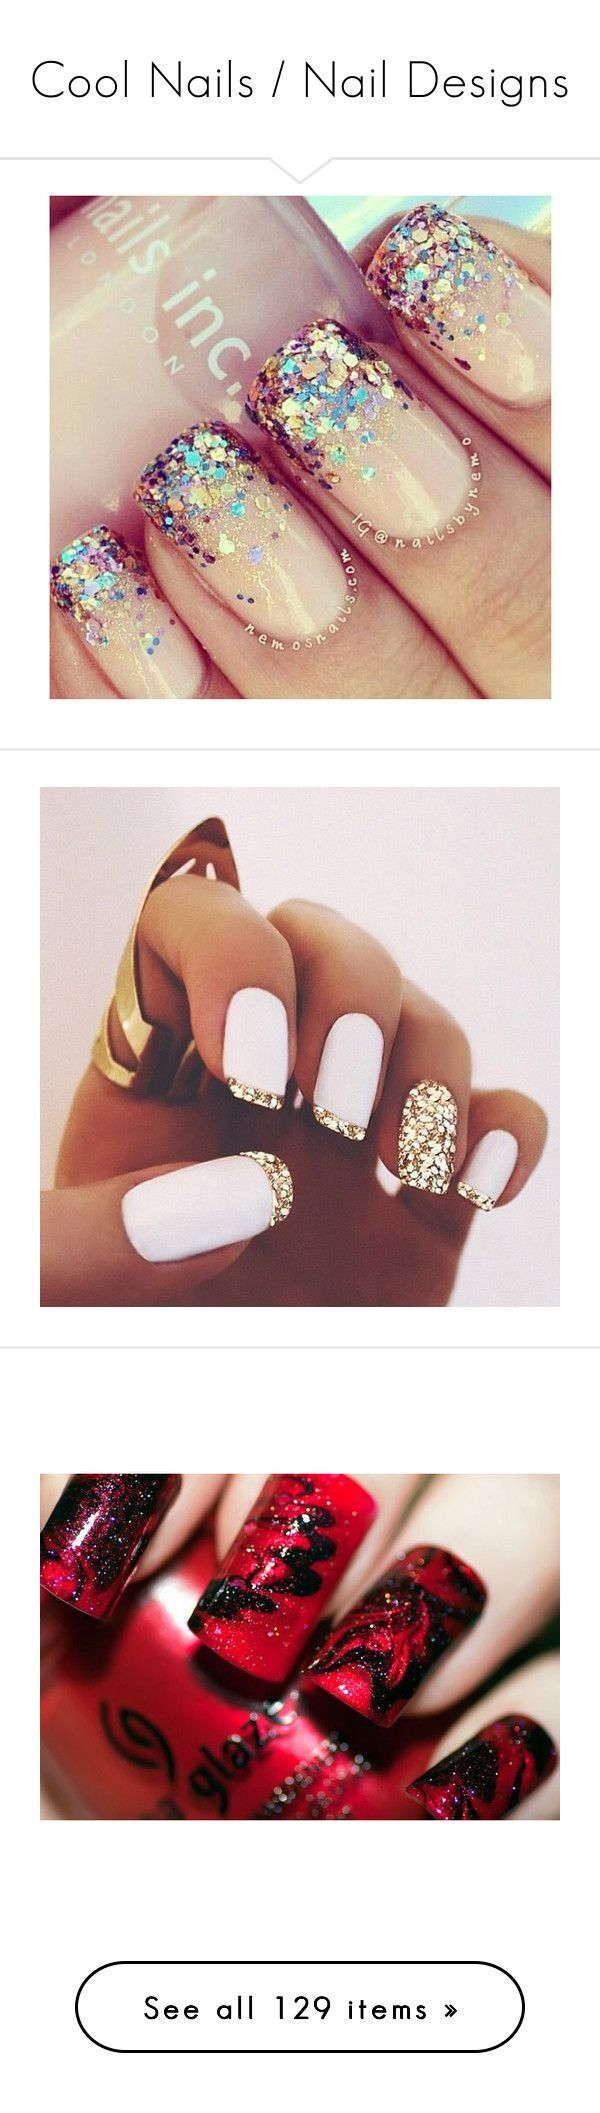 Cool Nails / Nail Designs by kelsey-aherne on Polyvore featuring polyvore, nails, beauty, makeup, nail polish, accessories, backgrounds, nail art, unhas, beauty products, nail care, black, nail treatments, harry potter, nail art kit, acrylic kit, manicure kit, pictures, lullabies, photos, rings, jewelry, batman, sticker nail polish, disney, makeup and nails, doctor who, indie hair, clear pink nail polish, pink nail color, pink glitter nail polish, gold nail color, marvel, christmas, pics…